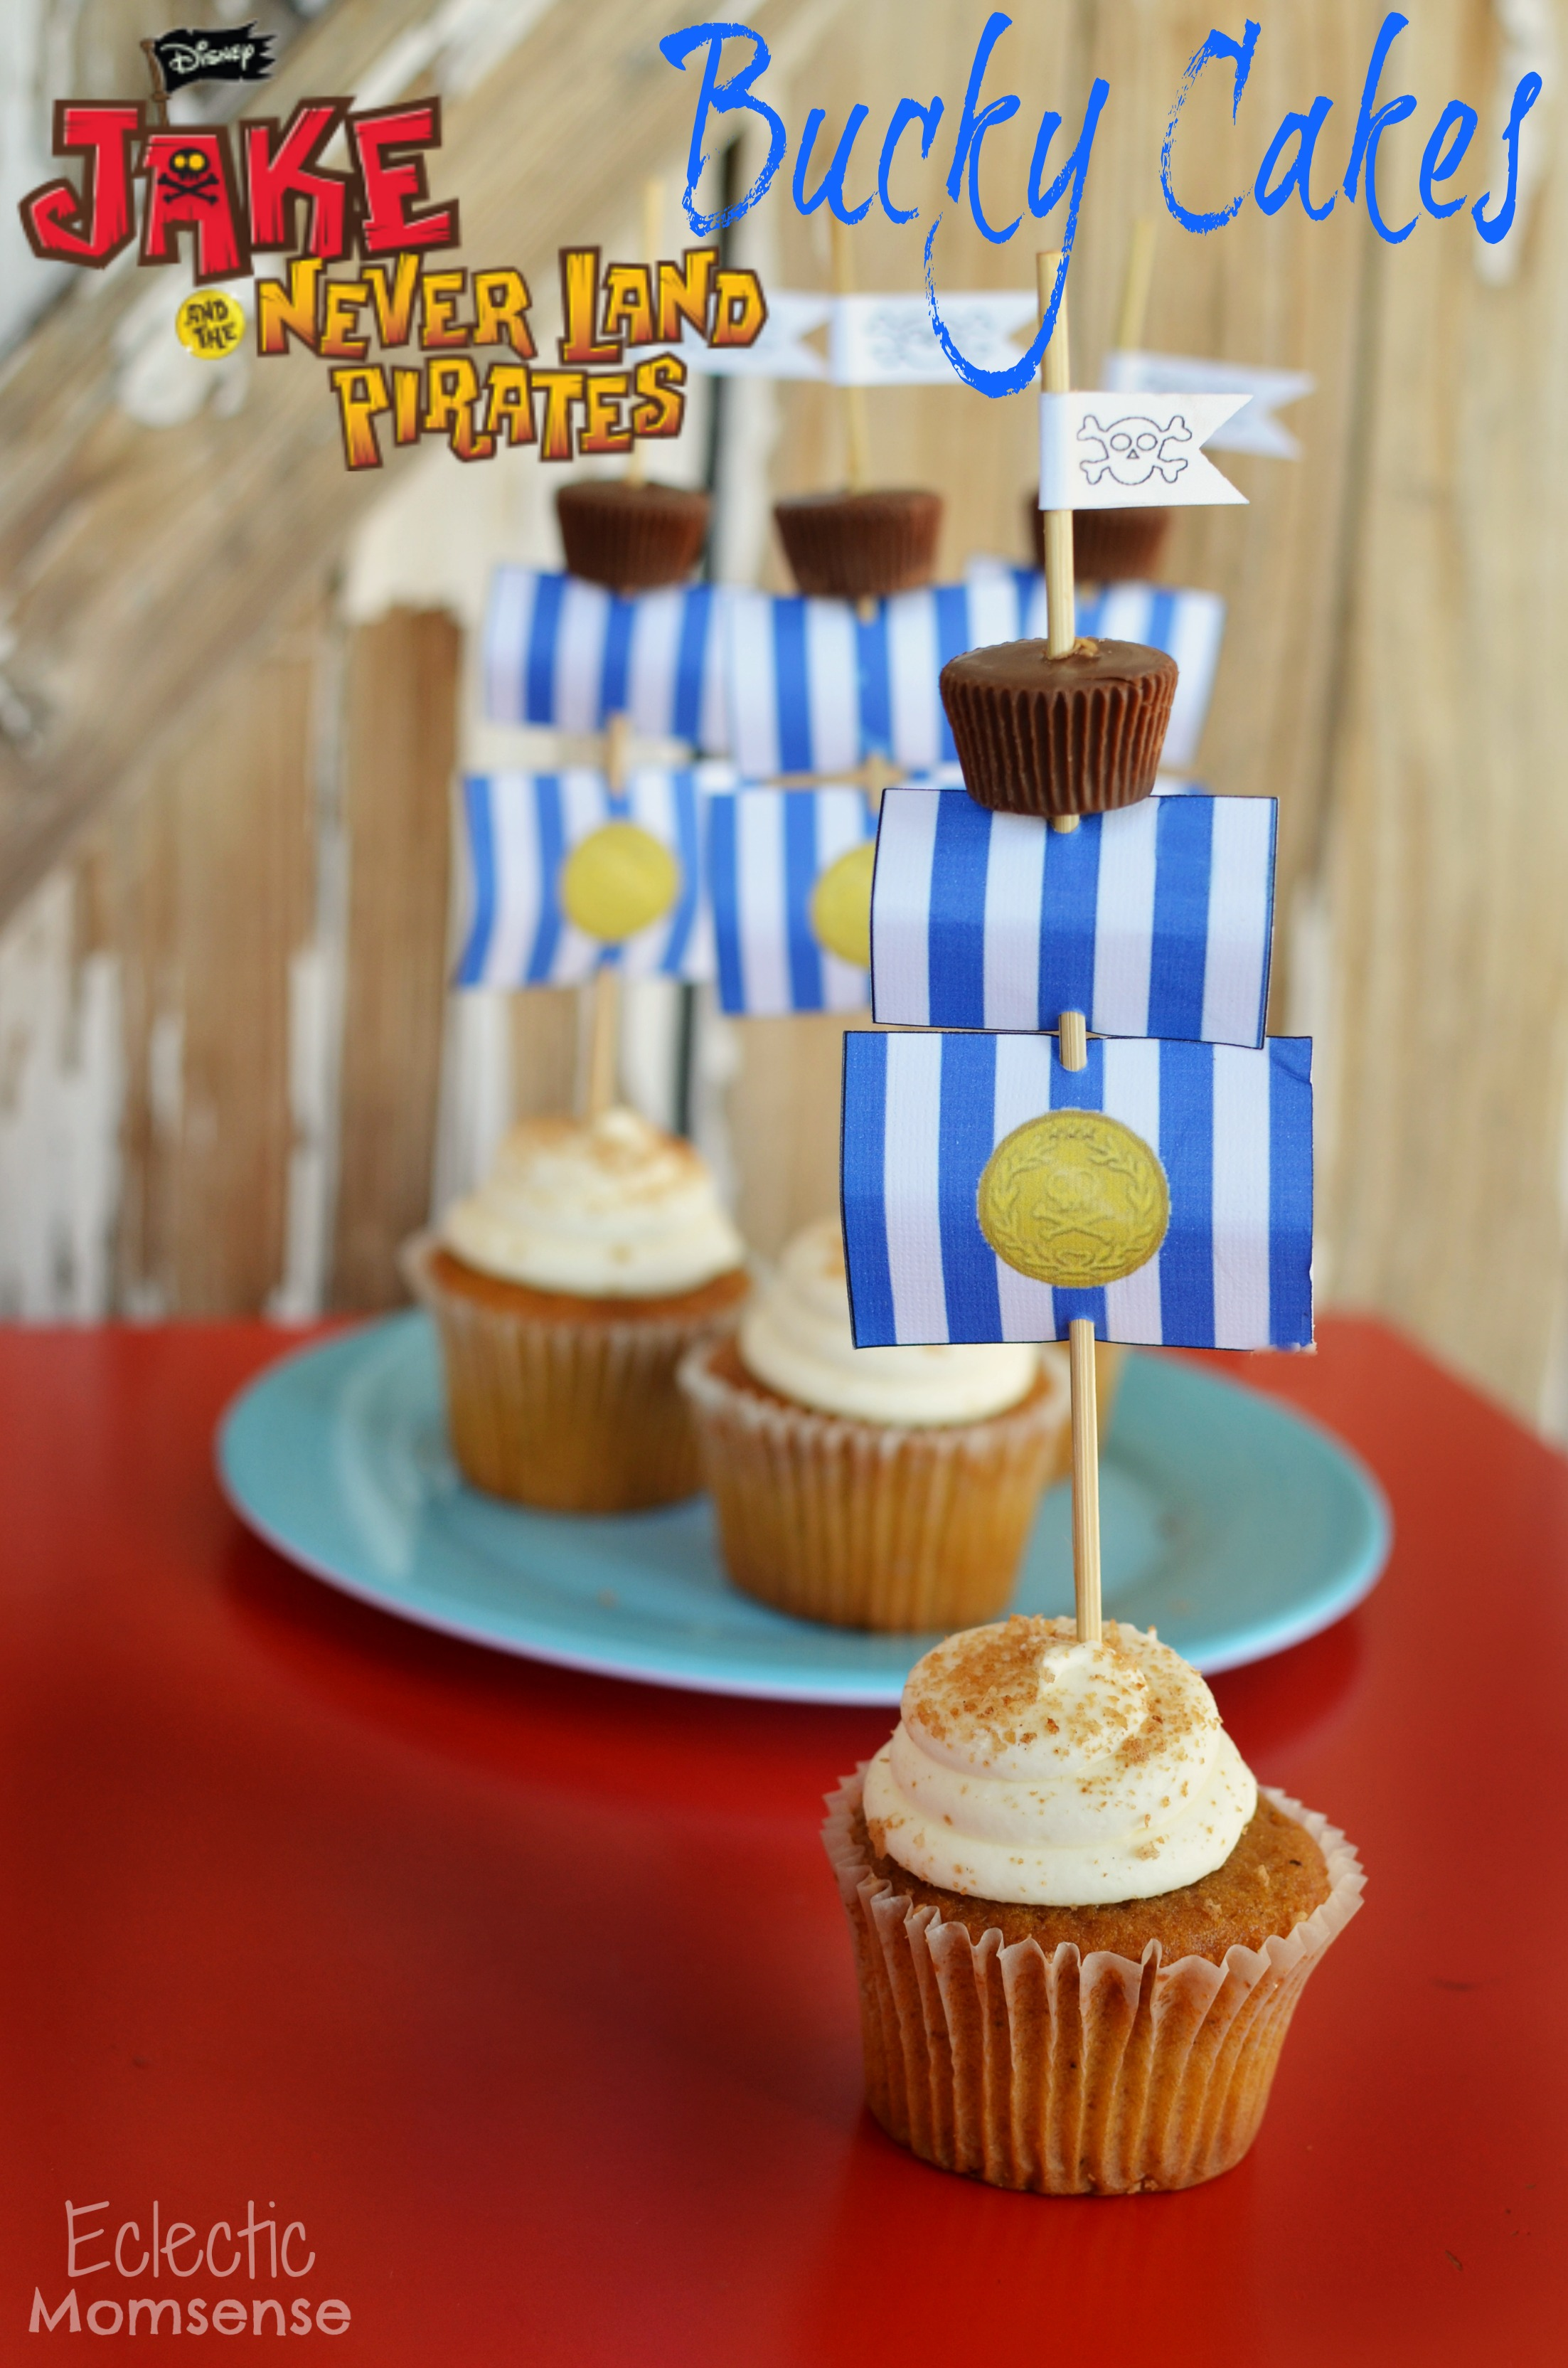 Amazing Jake And The Neverland Pirates Bucky Cupcakes Eclectic Momsense Funny Birthday Cards Online Inifofree Goldxyz